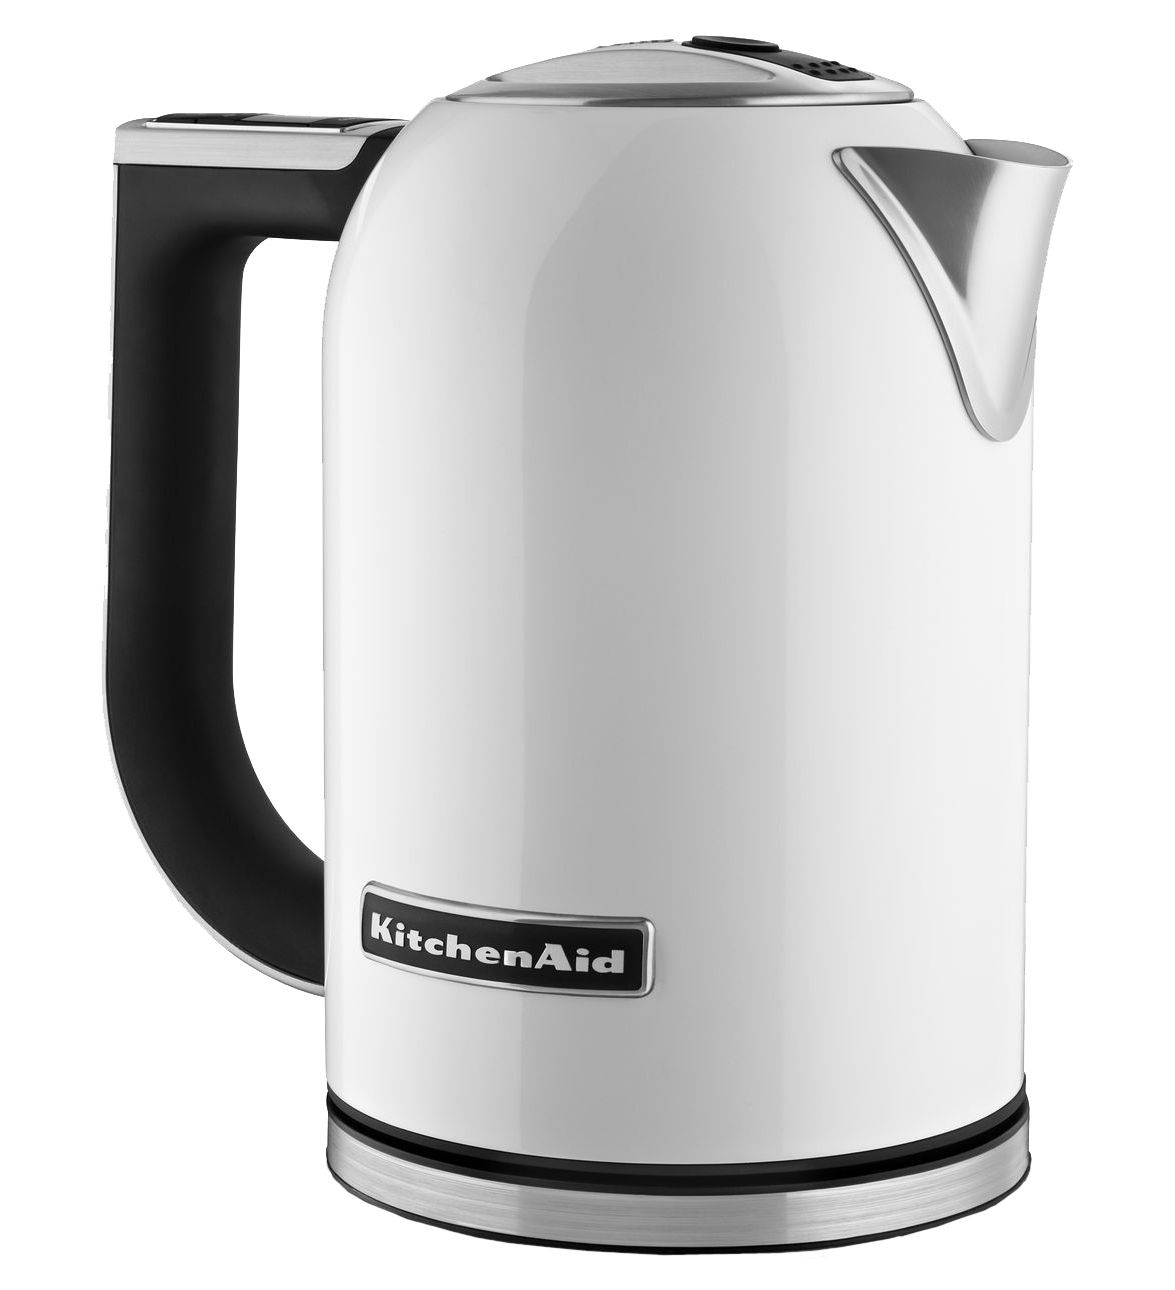 KitchenAid White Electric Kettle